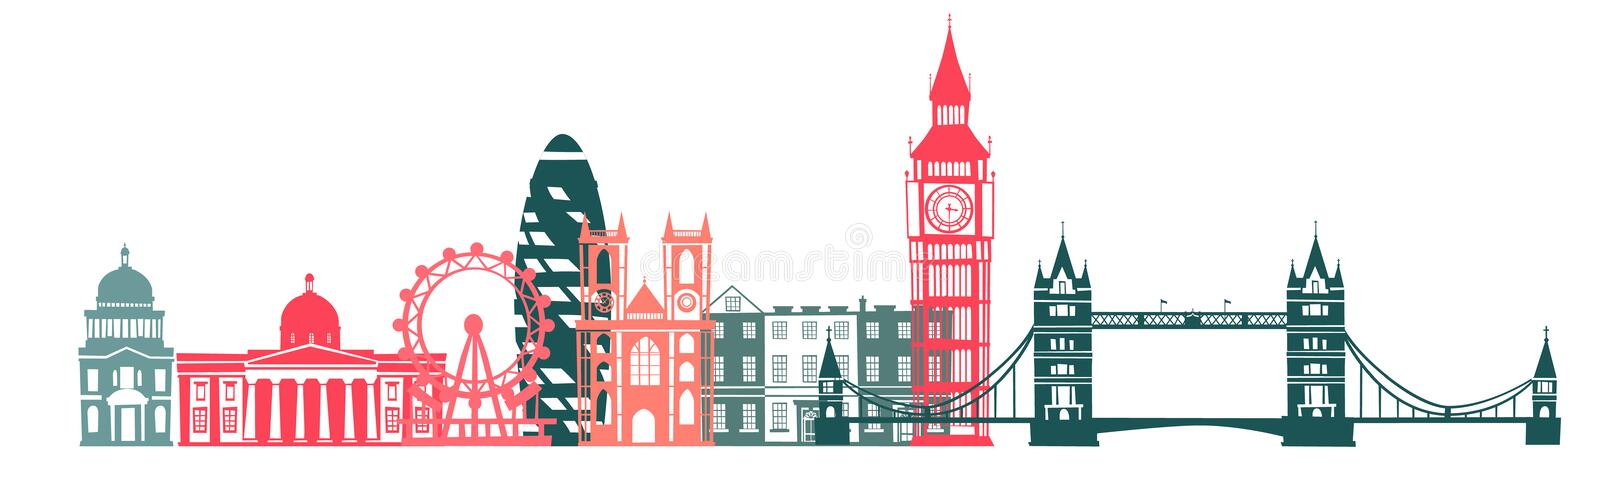 London city skyline color silhouette background. Vector illustration. Isolated on white background stock illustration